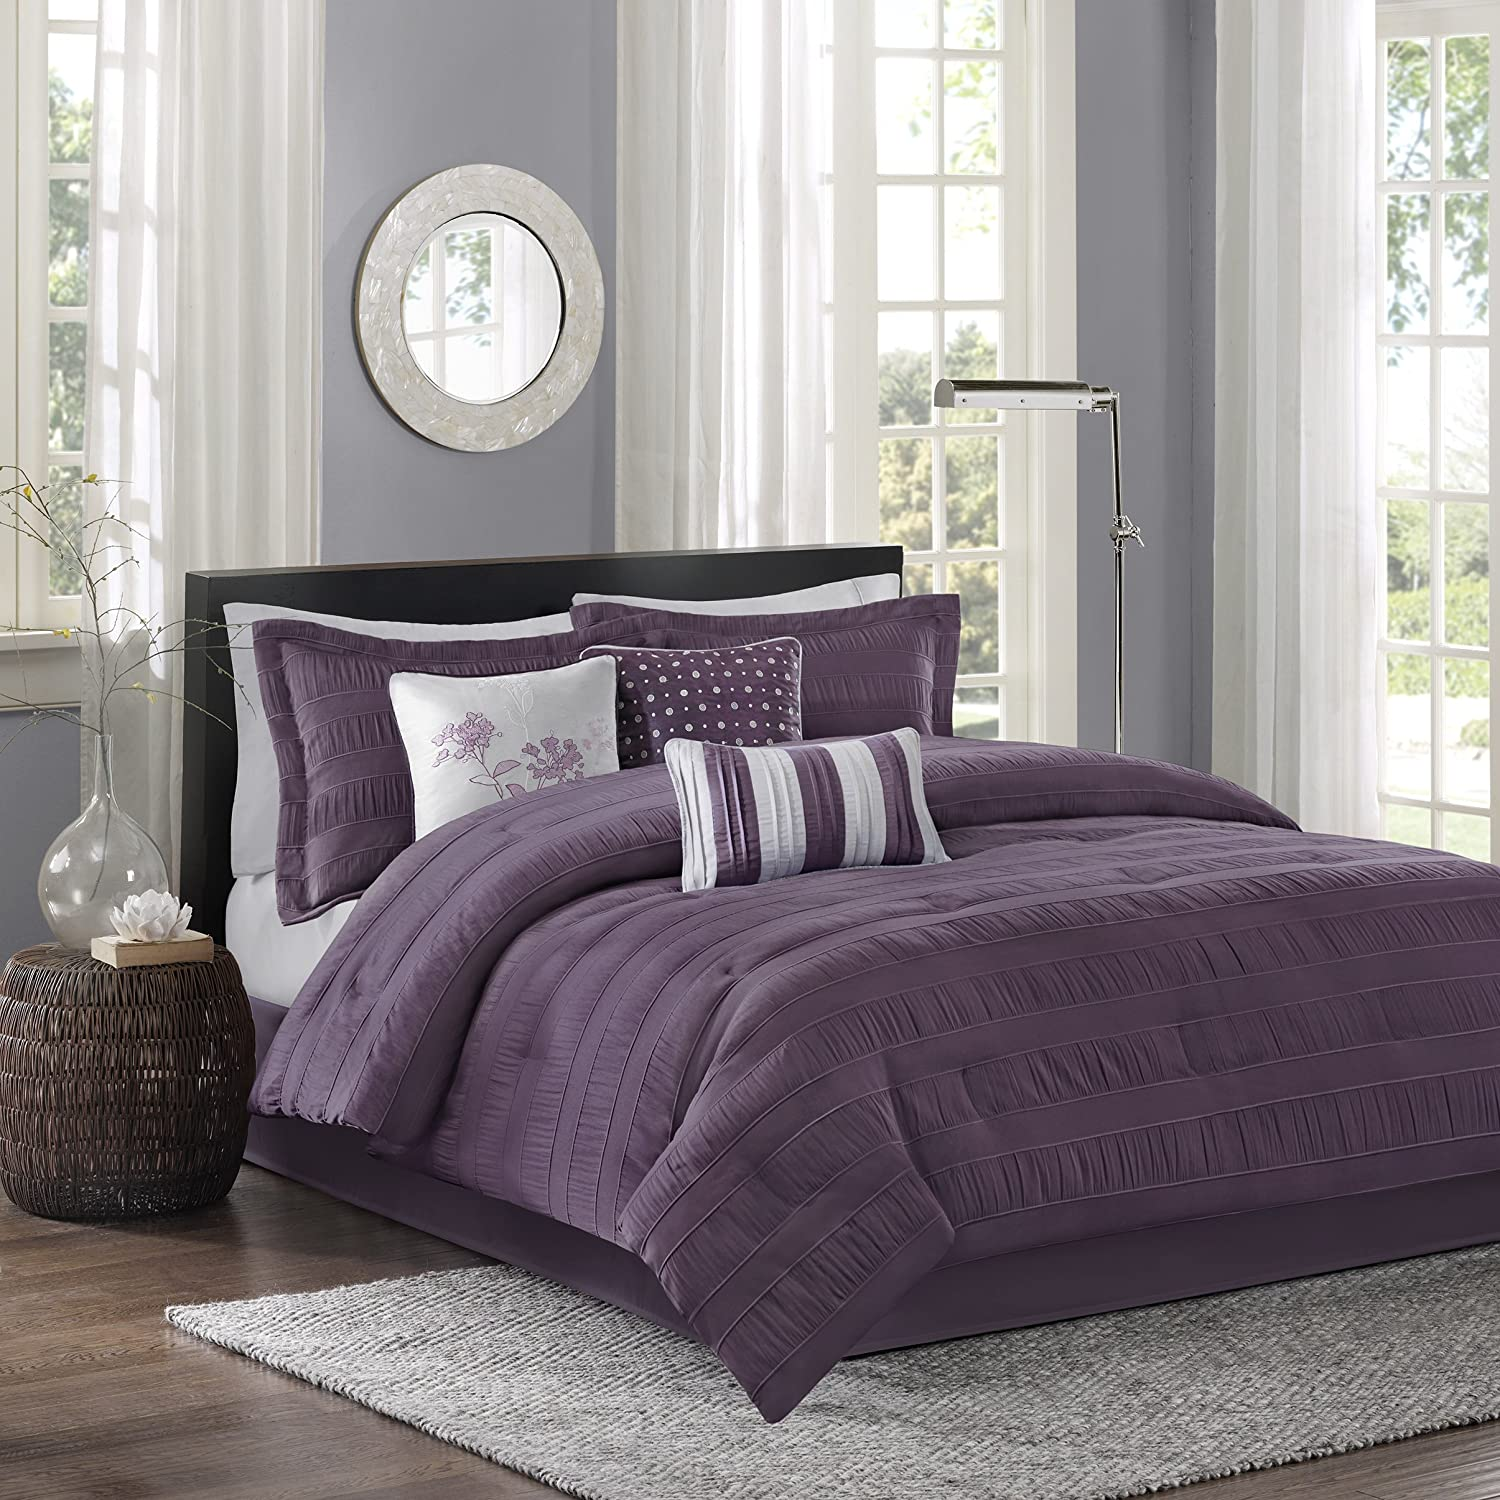 Madison Park Hampton Queen Size Bed Comforter Set Bed in A Bag - Purple, Jacquard Pleated Stripes